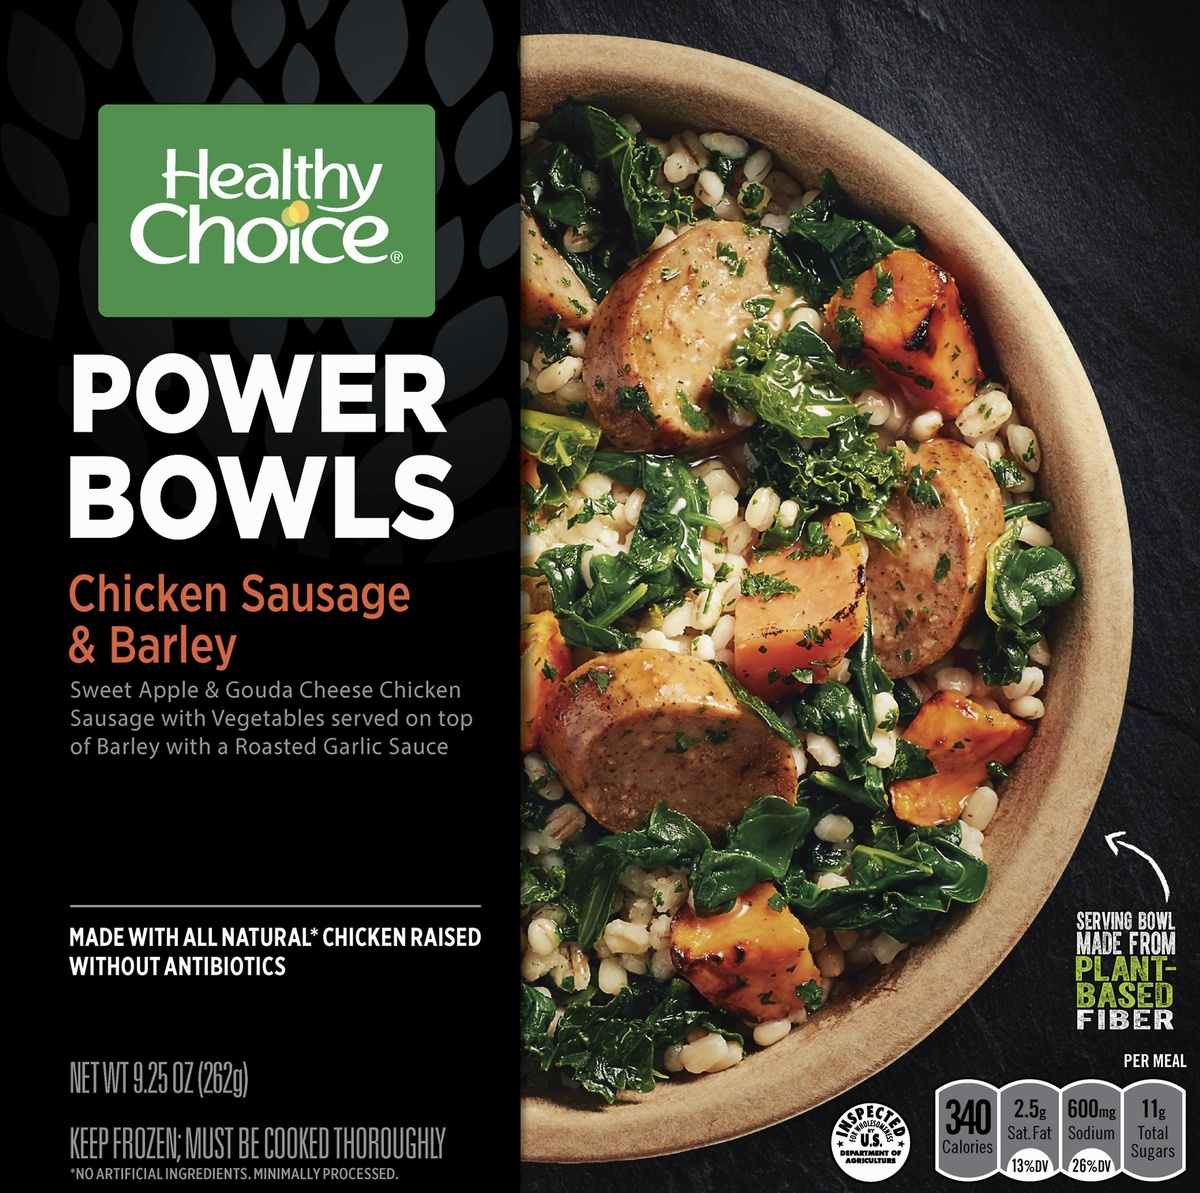 slide 7 of 8, Healthy Choice Powerbowl Chicken Sausage Barley,